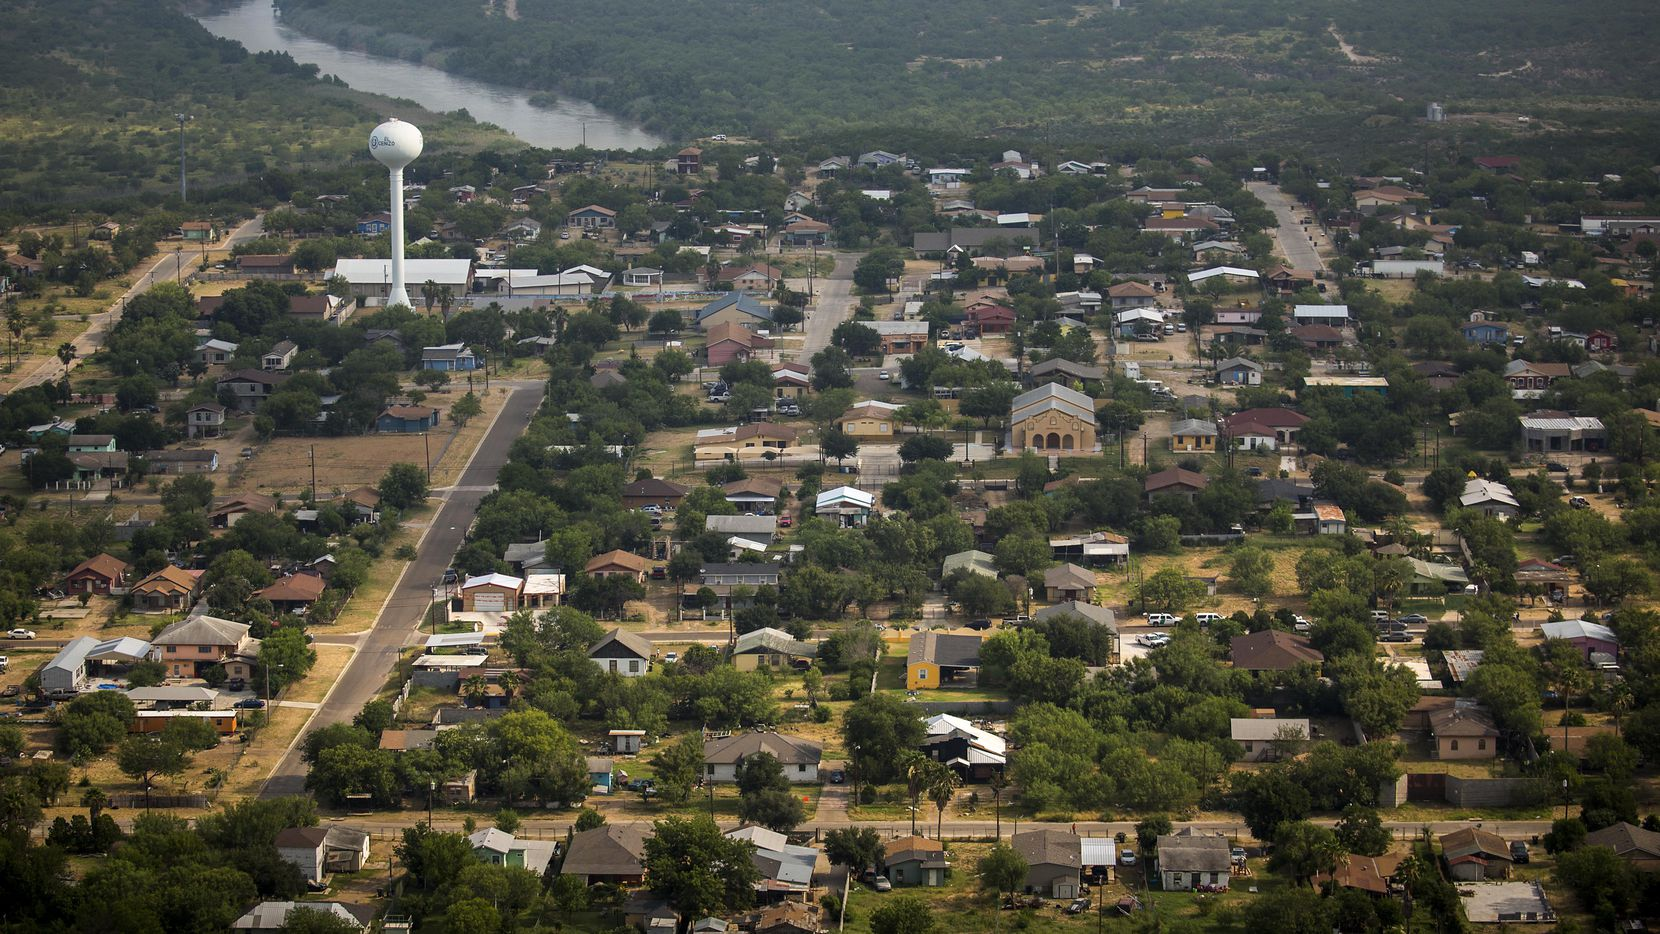 """An aerial view shows the city El Cenizo, Texas,  on the banks of the Rio Grande on Thursday, May 11, 2017. The small town (population 3,800)  has had  a """"safe haven"""" ordinance in place since 1999, and has become the first to legally challenge the Texas sanctuary cities ban."""